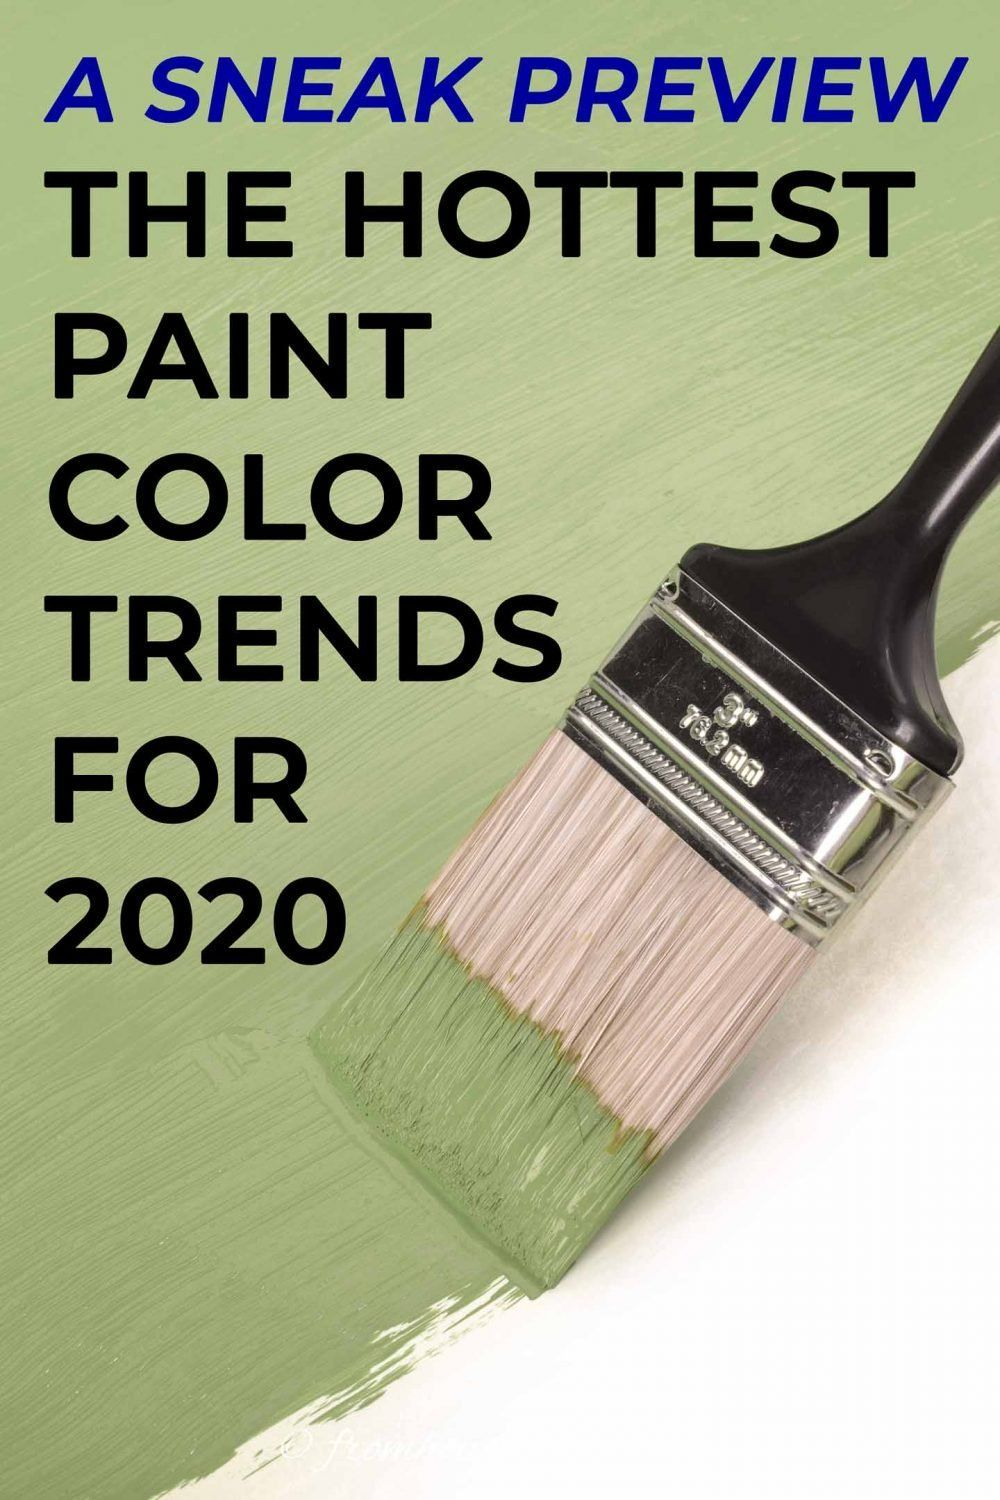 The Hottest 2020 Paint Color Trends in 2020 (With images